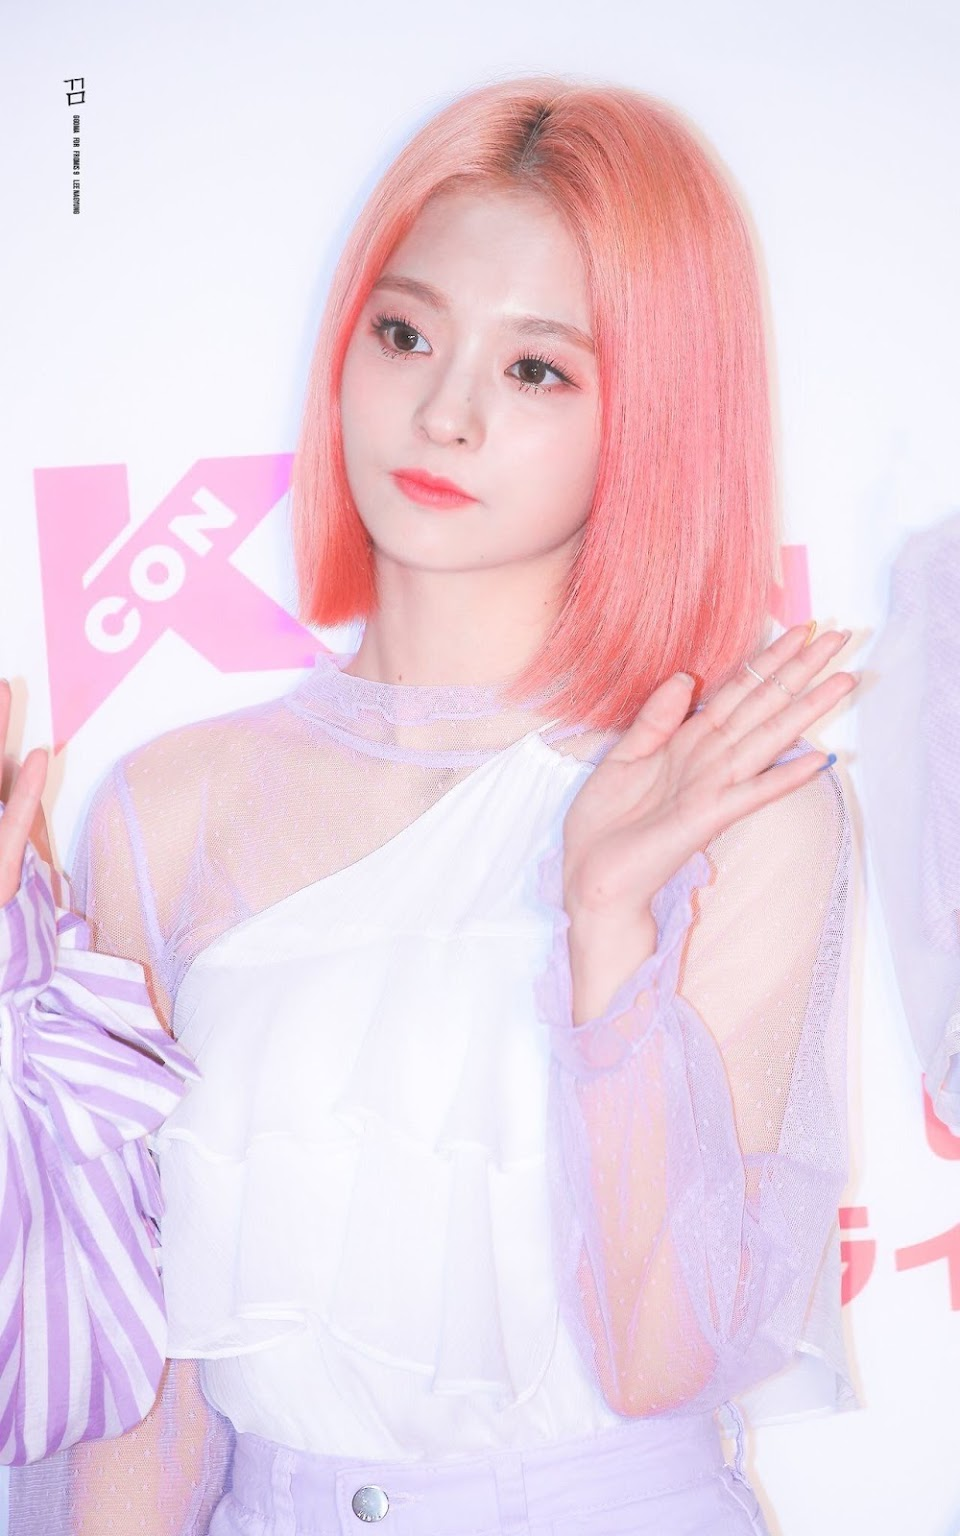 18 nagyung fromis9